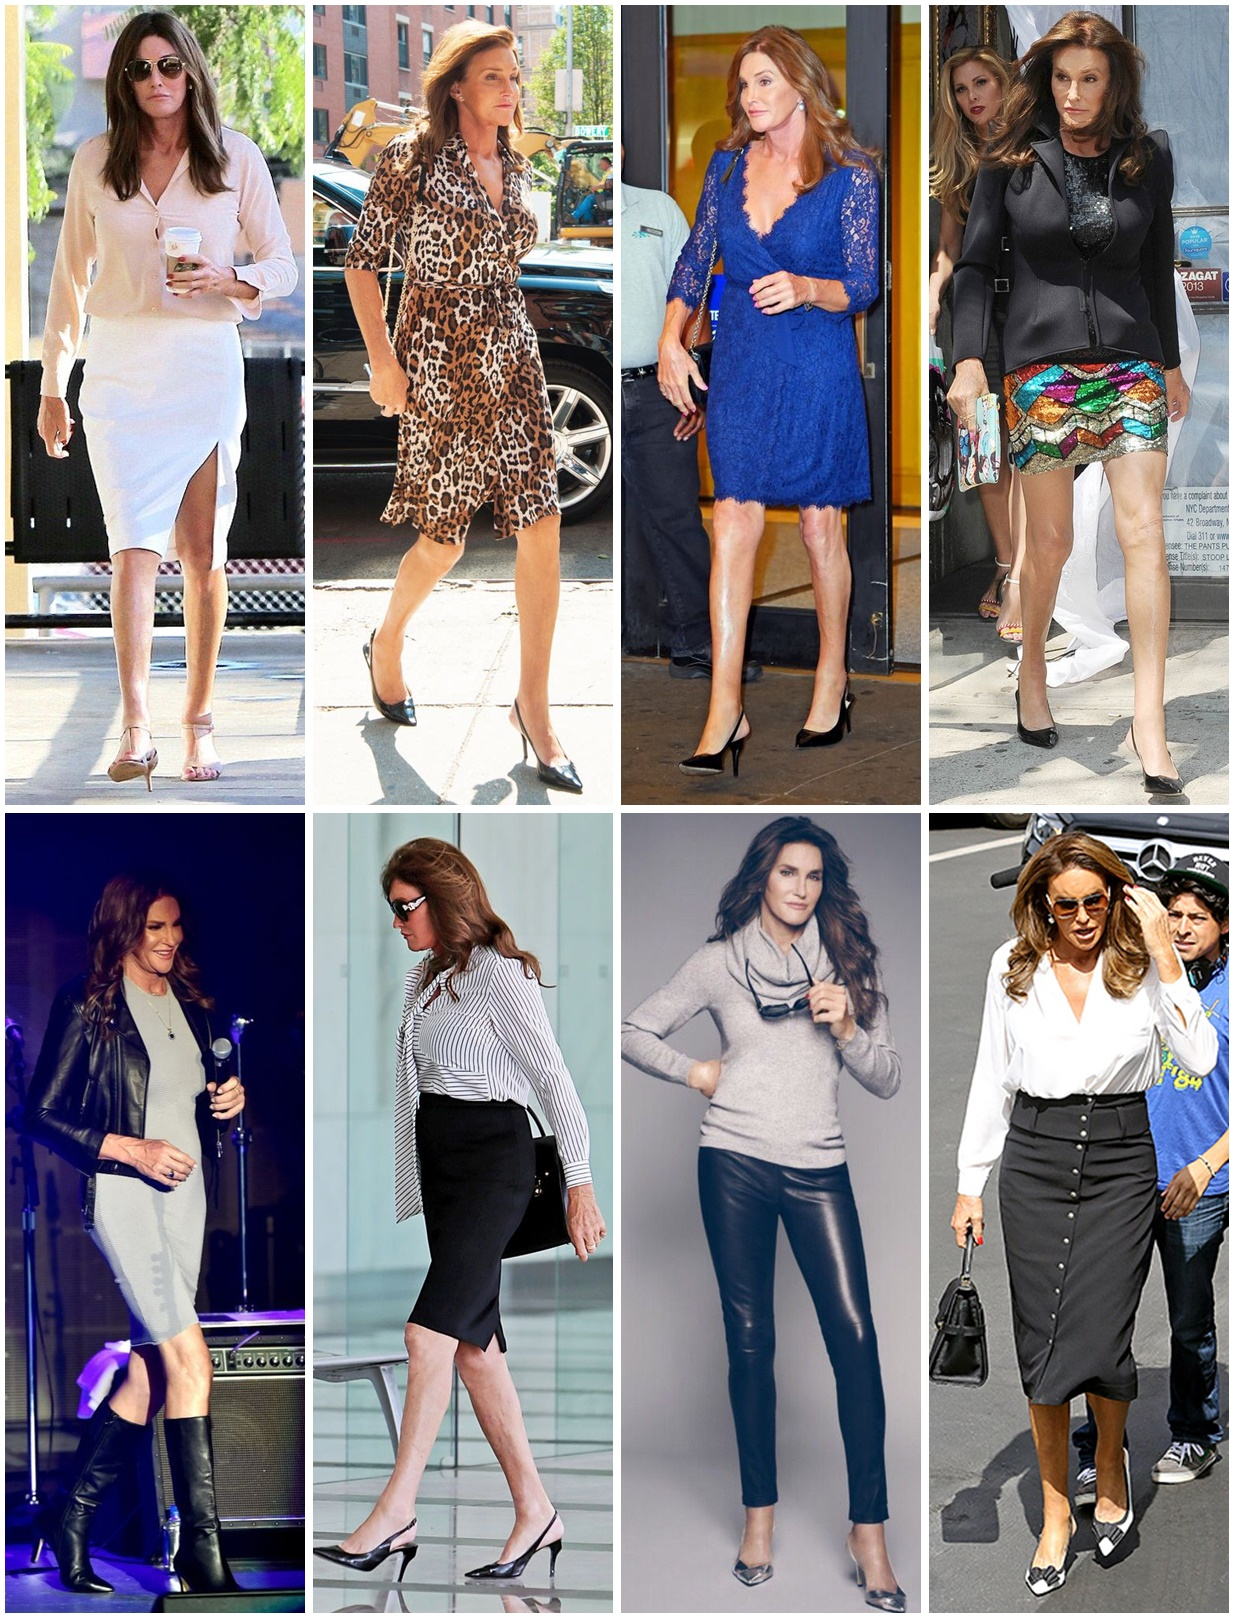 chic caitlyn jenner